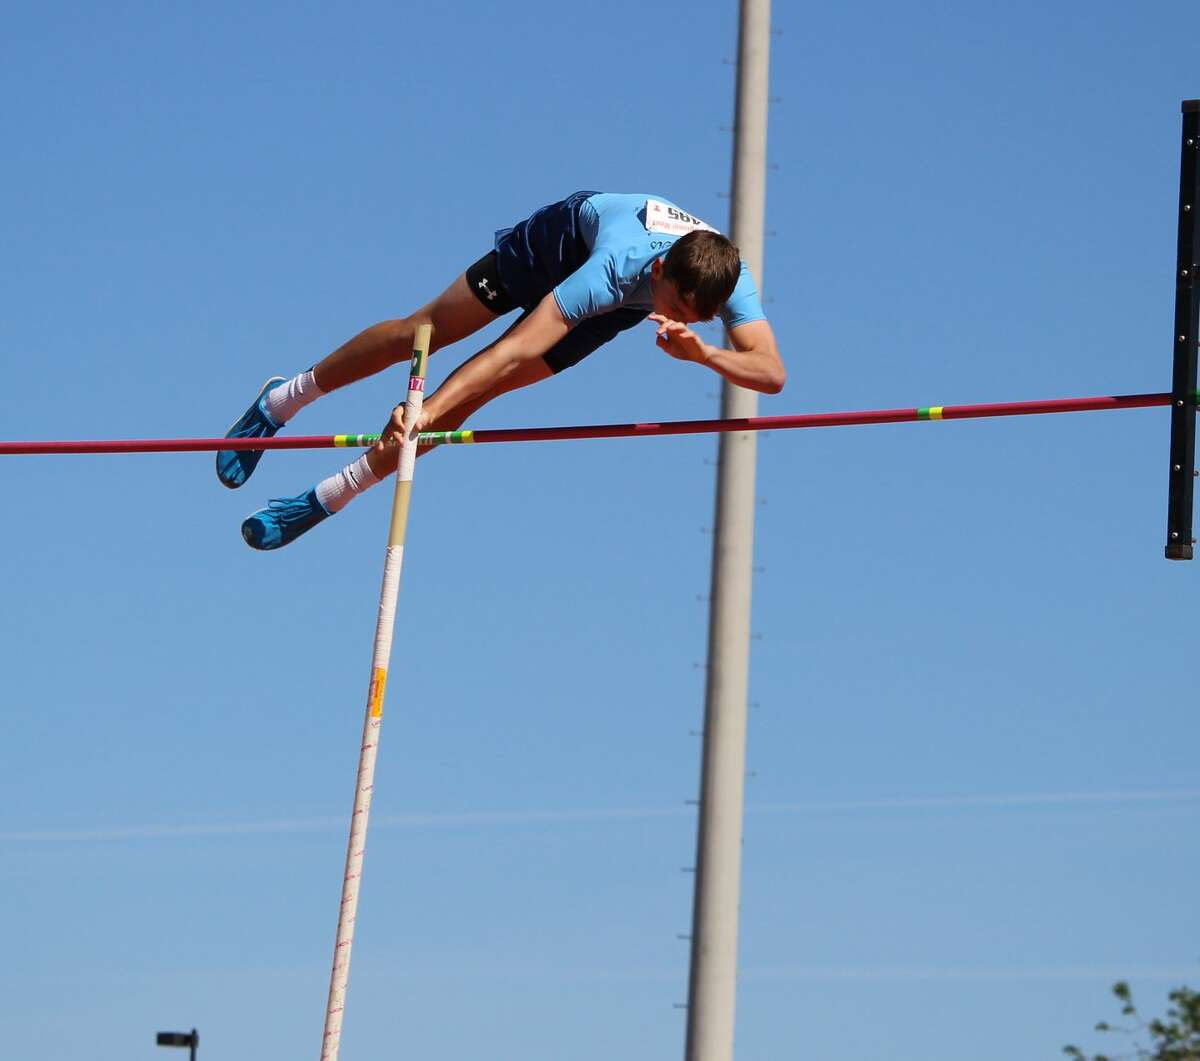 Greenwood's Hunter Wigington is shown here competing in the pole vault during the Region I-4A Track & Field Championships at Texas Tech University on May 1. Photo by James Vint.